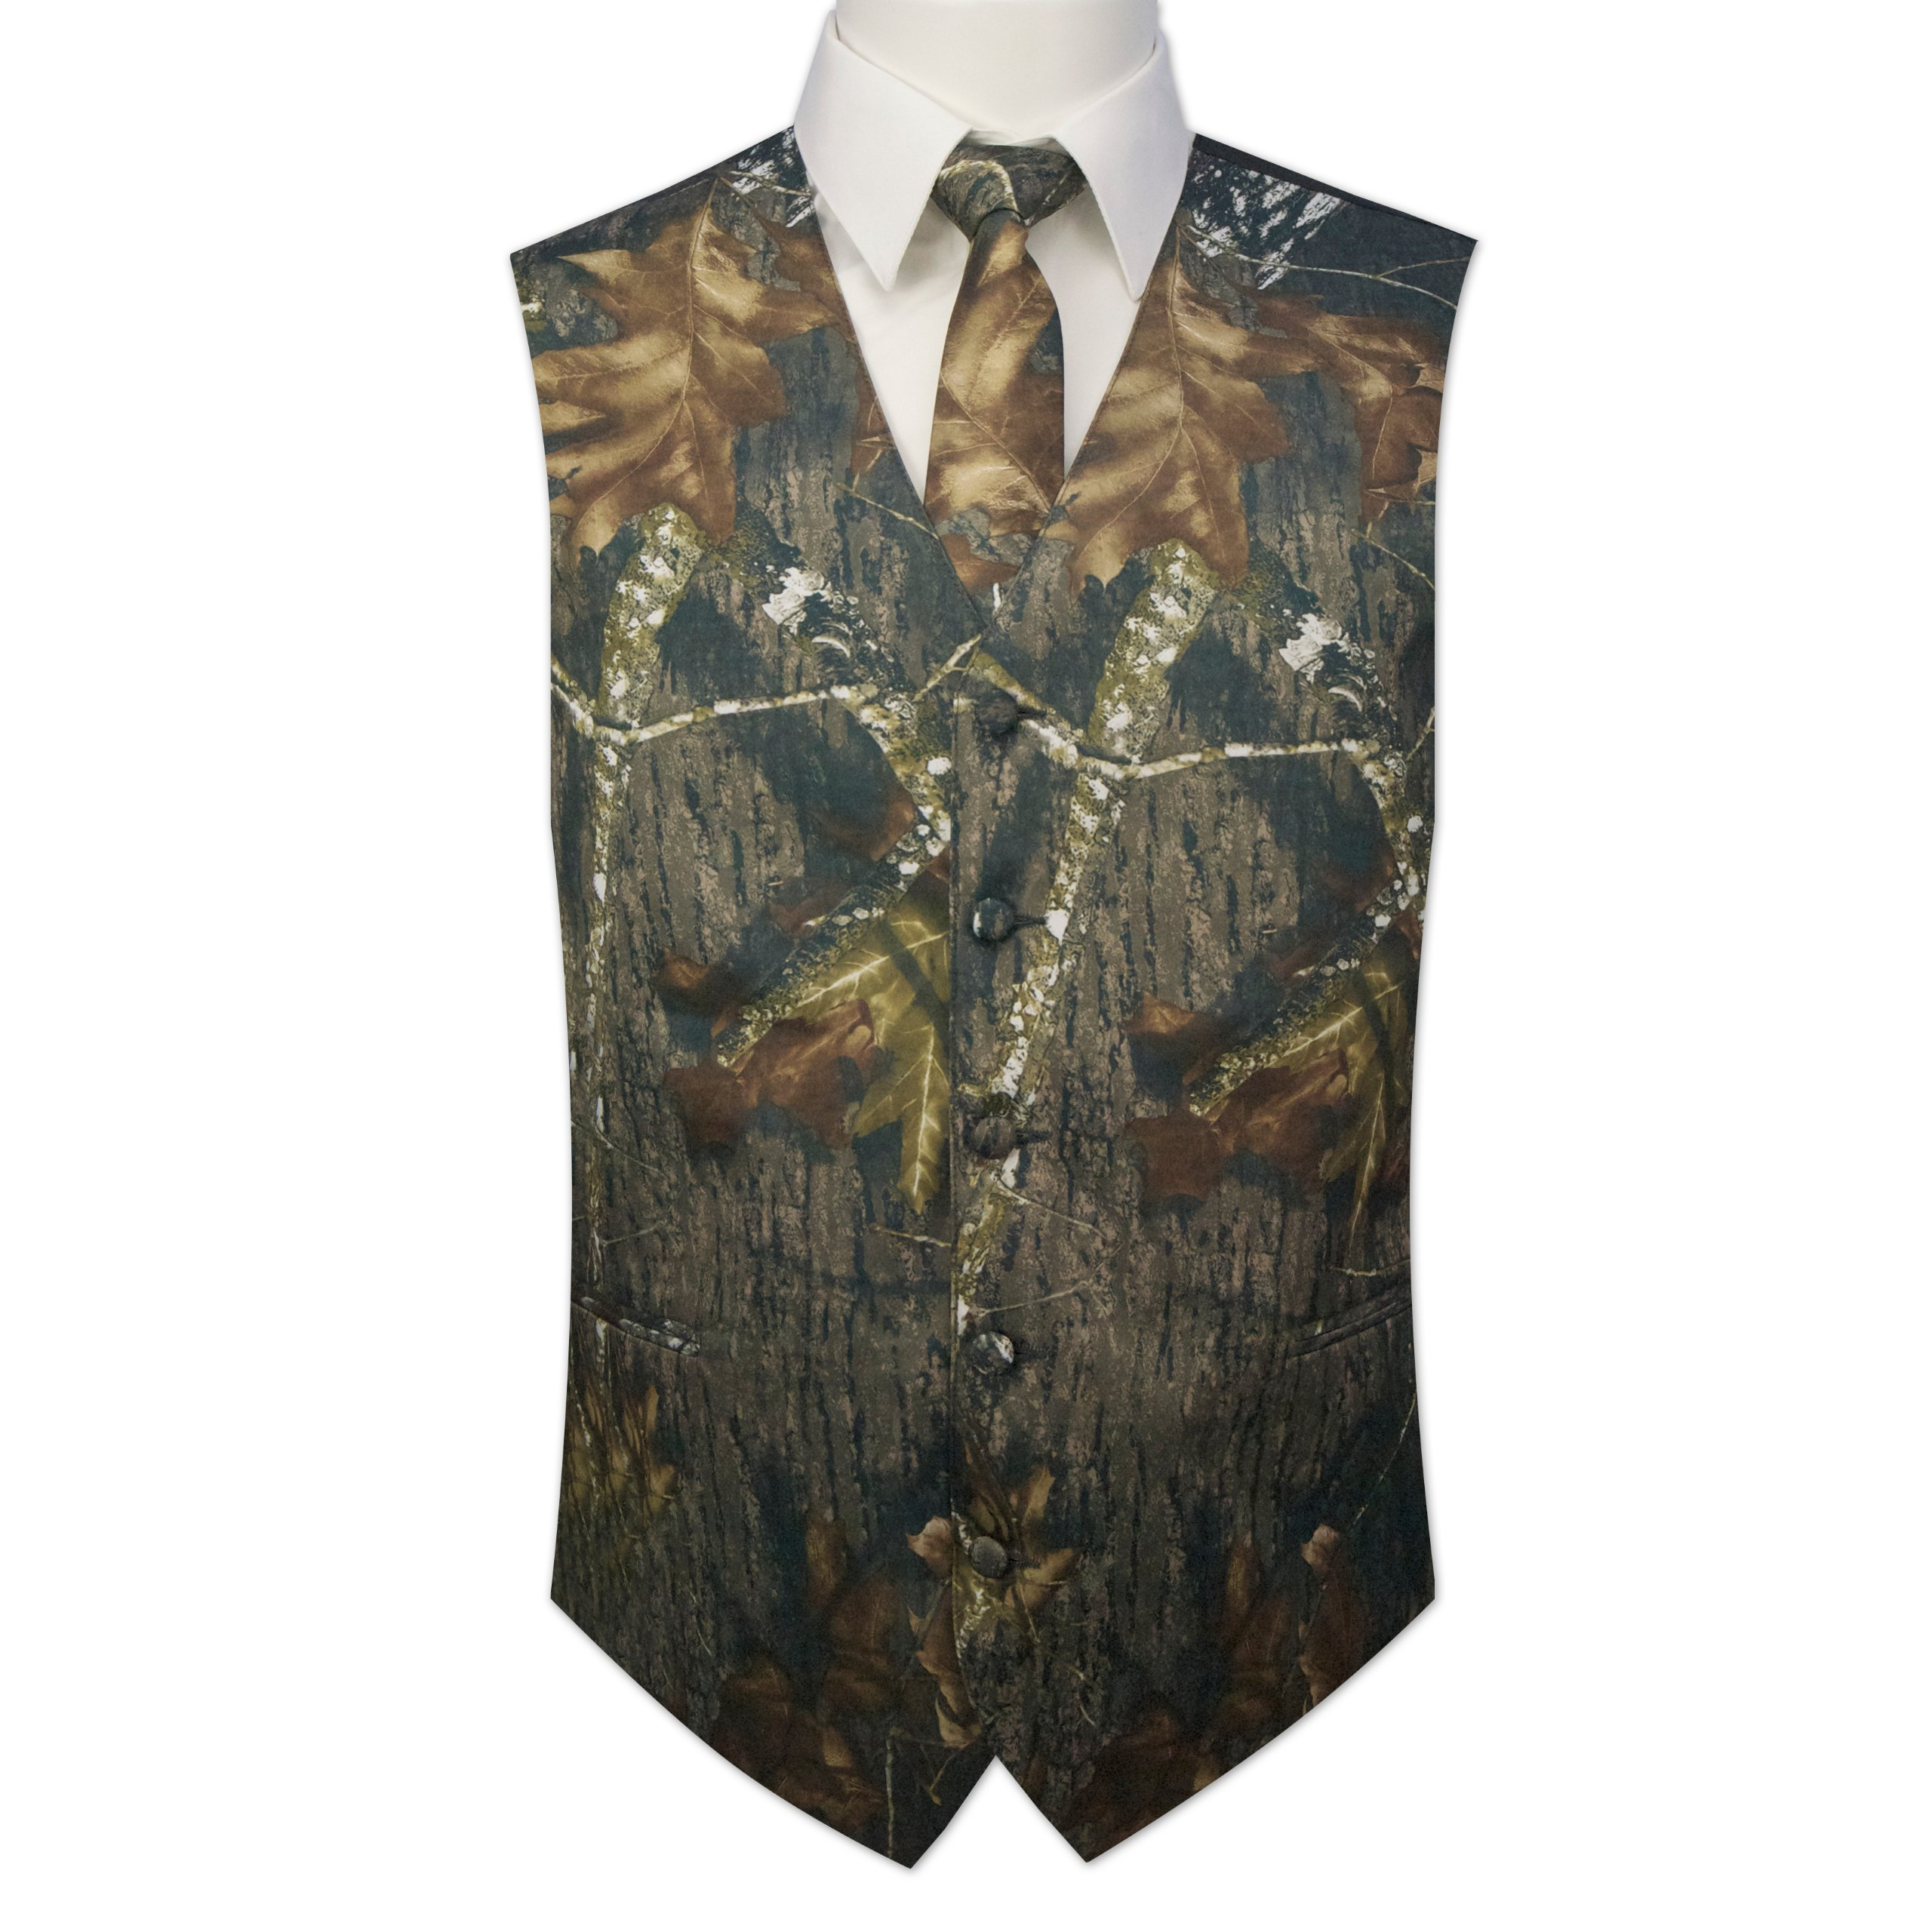 Camouflage Vest & Tie (2X-Large Long with Neck Tie) by Tuxedo Park